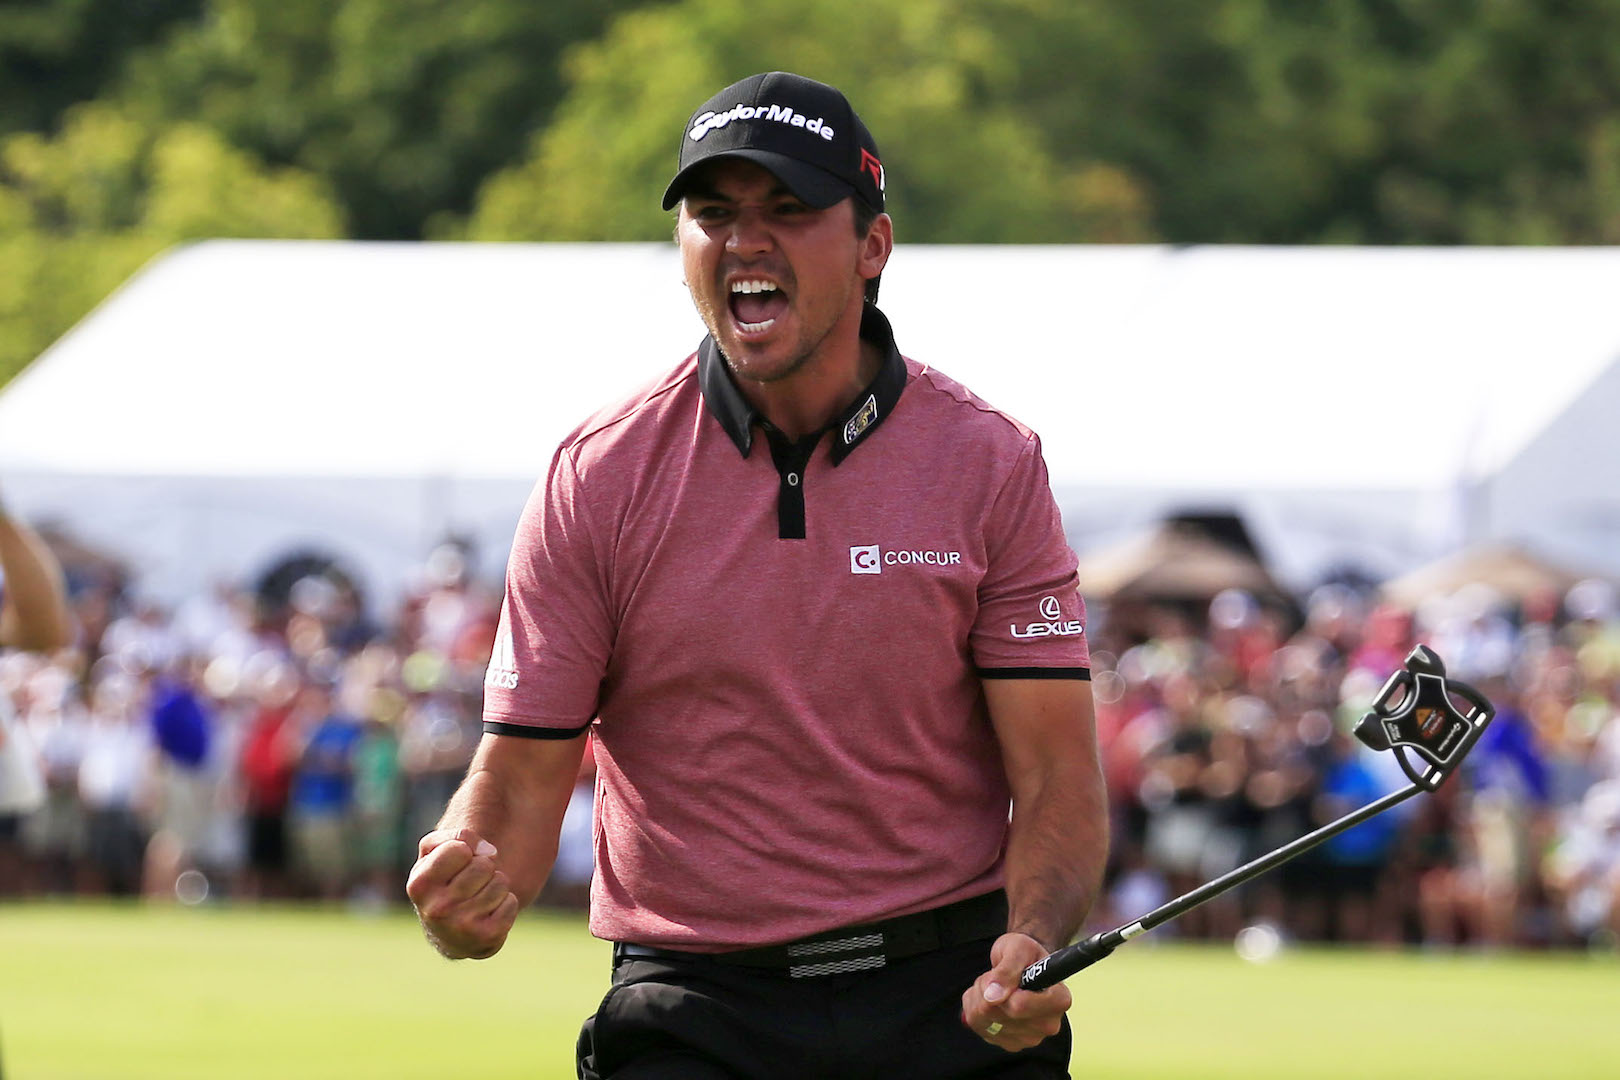 Top 5 Slowest Golfers Revisited